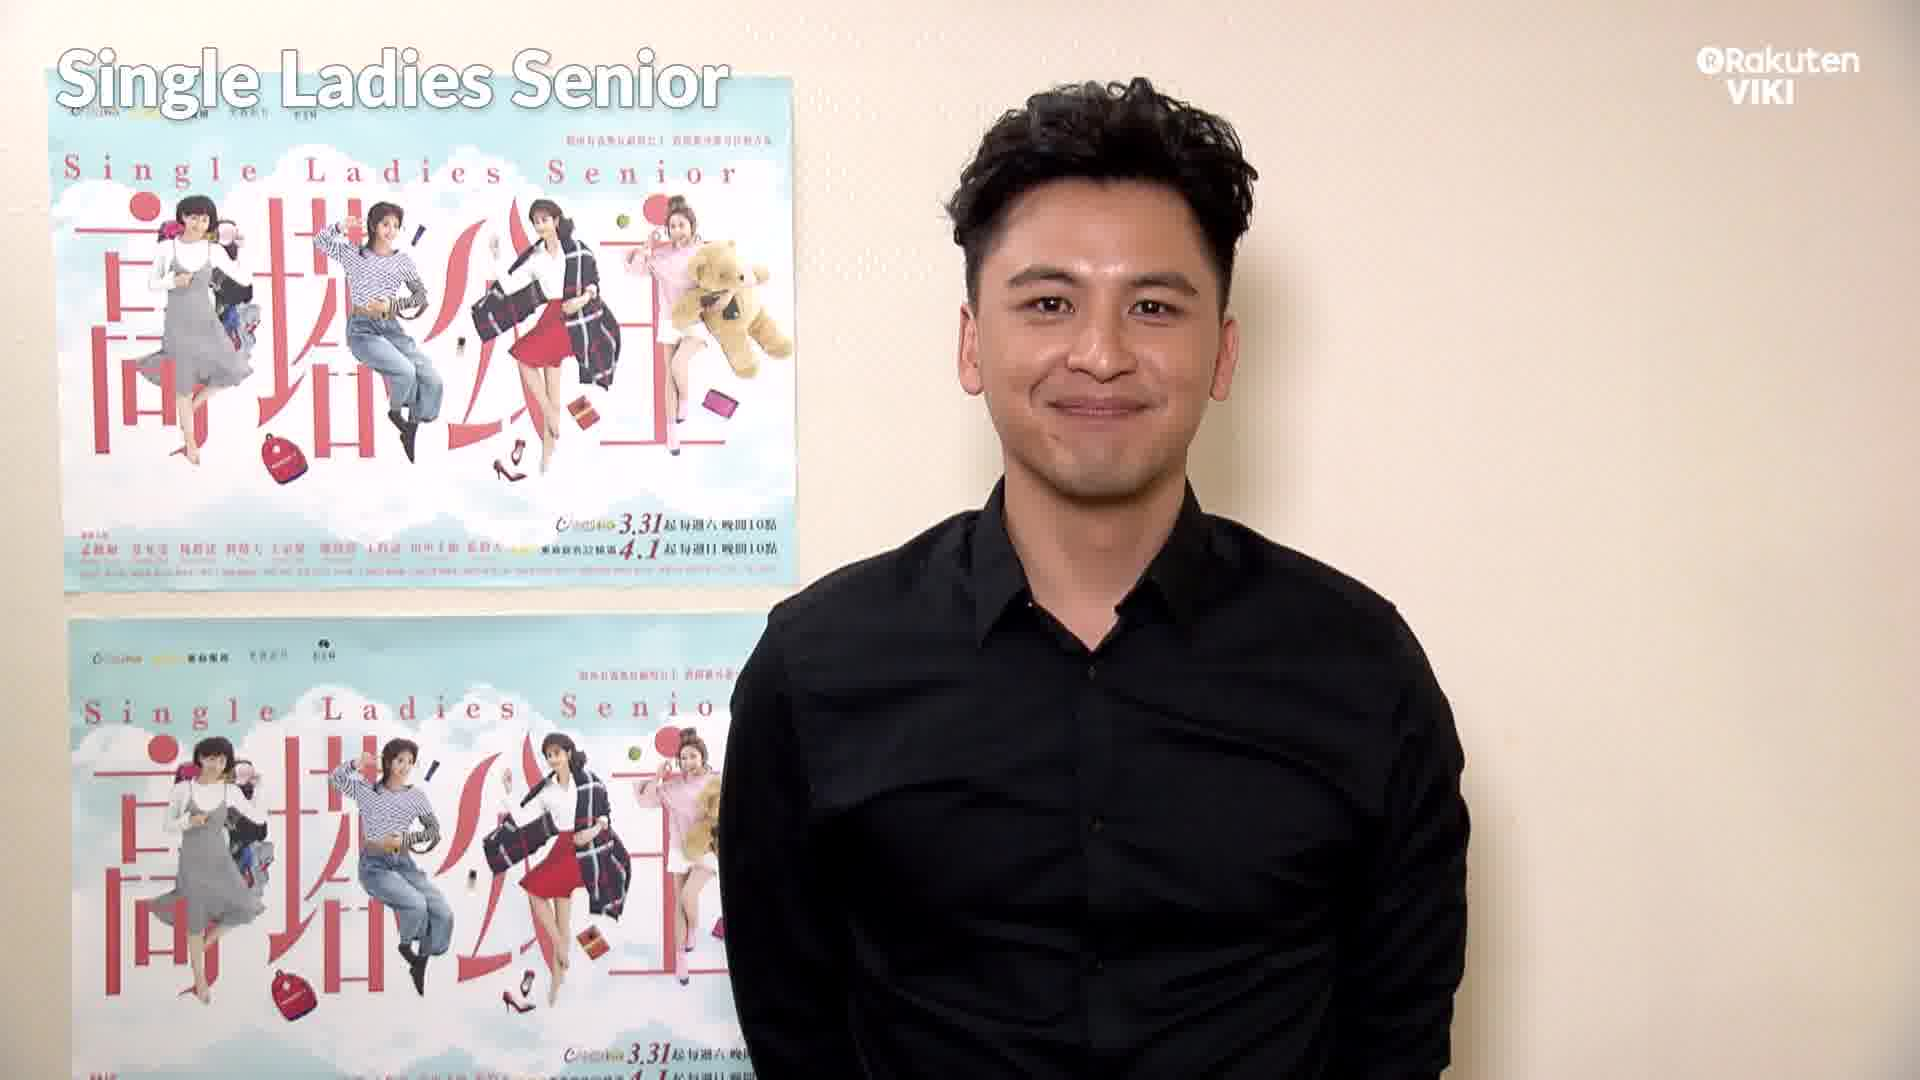 Duncan Lai's Shoutout to Viki: Single Ladies Senior